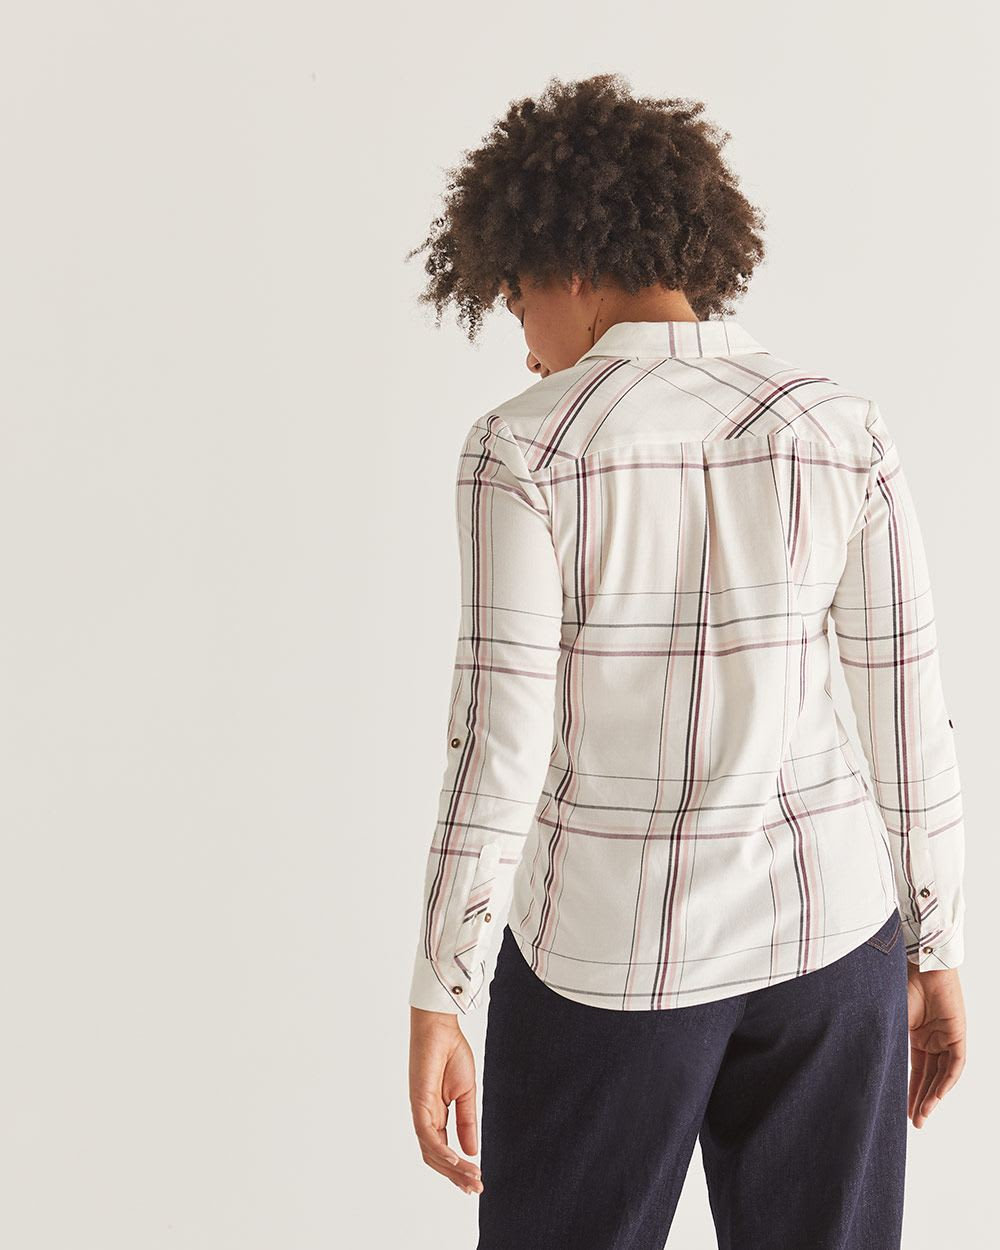 Plaid Shirt with Pocket - Petite